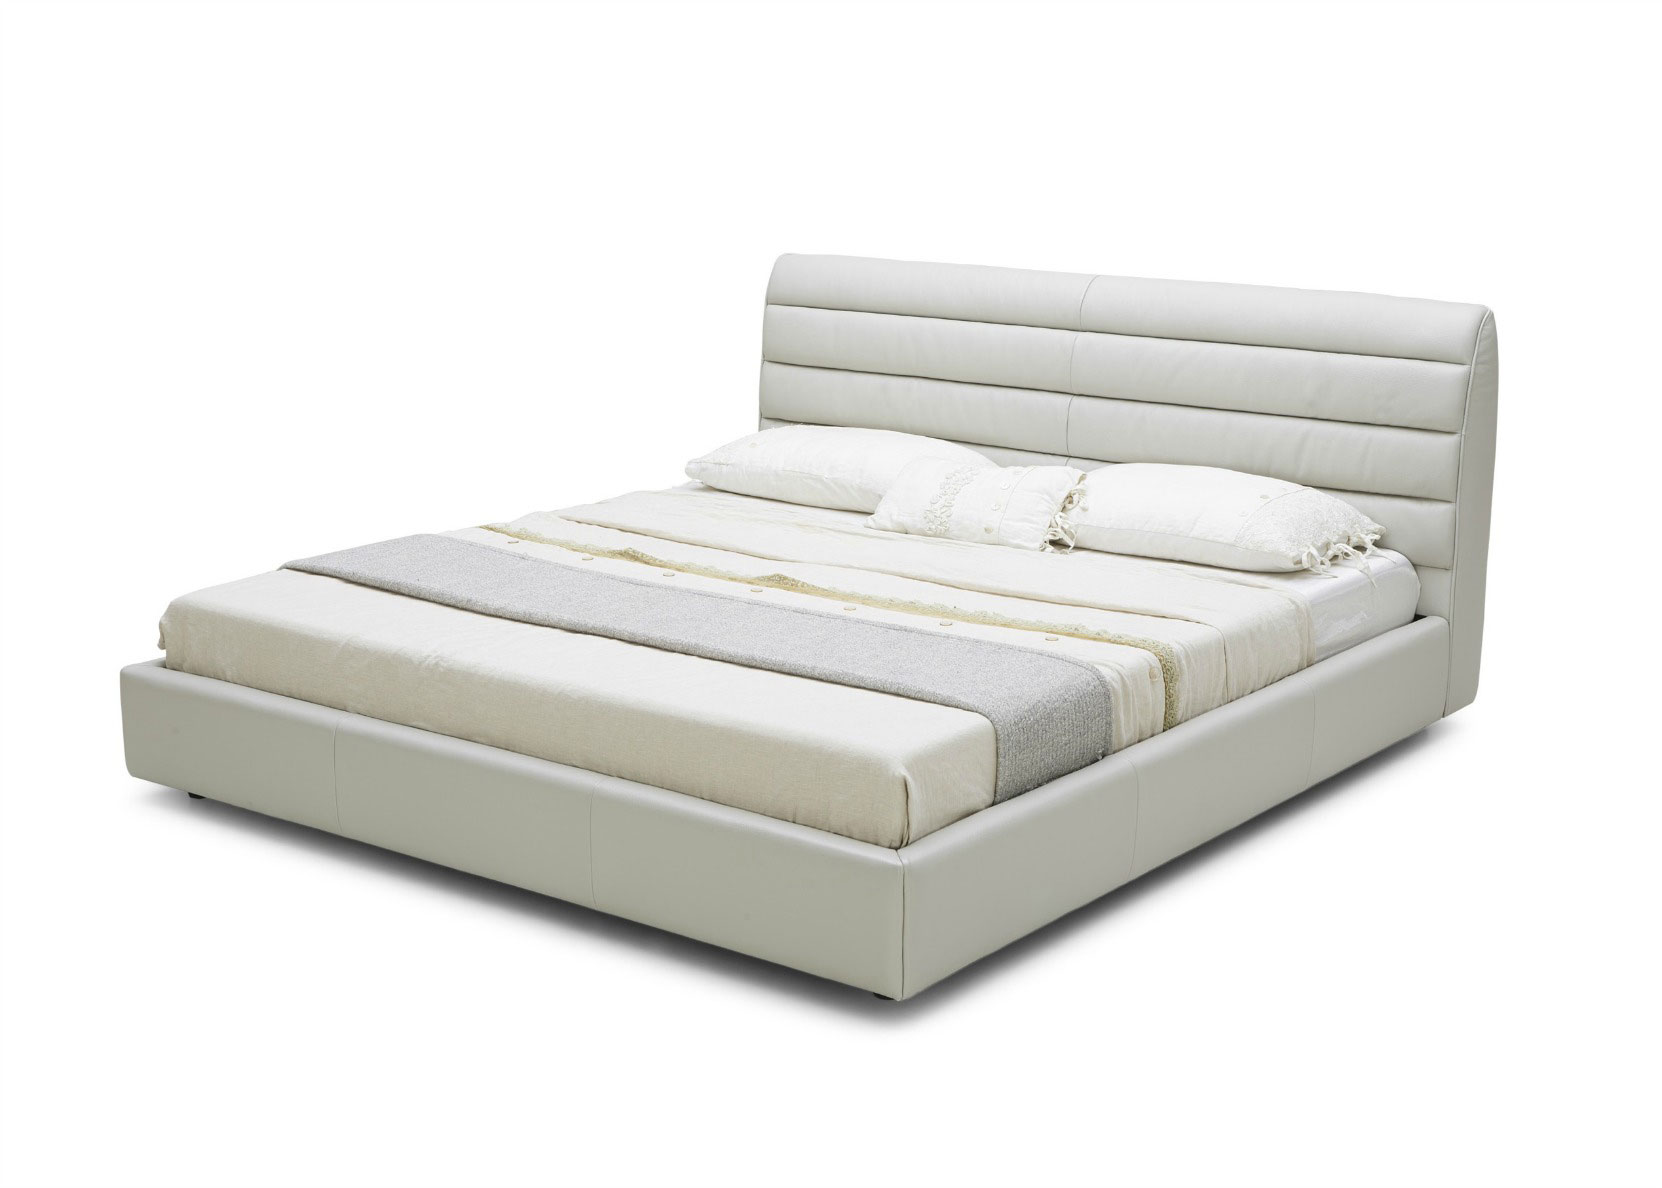 Contemporary Bed With A Solid Upholstered Frame - Not Just Brown